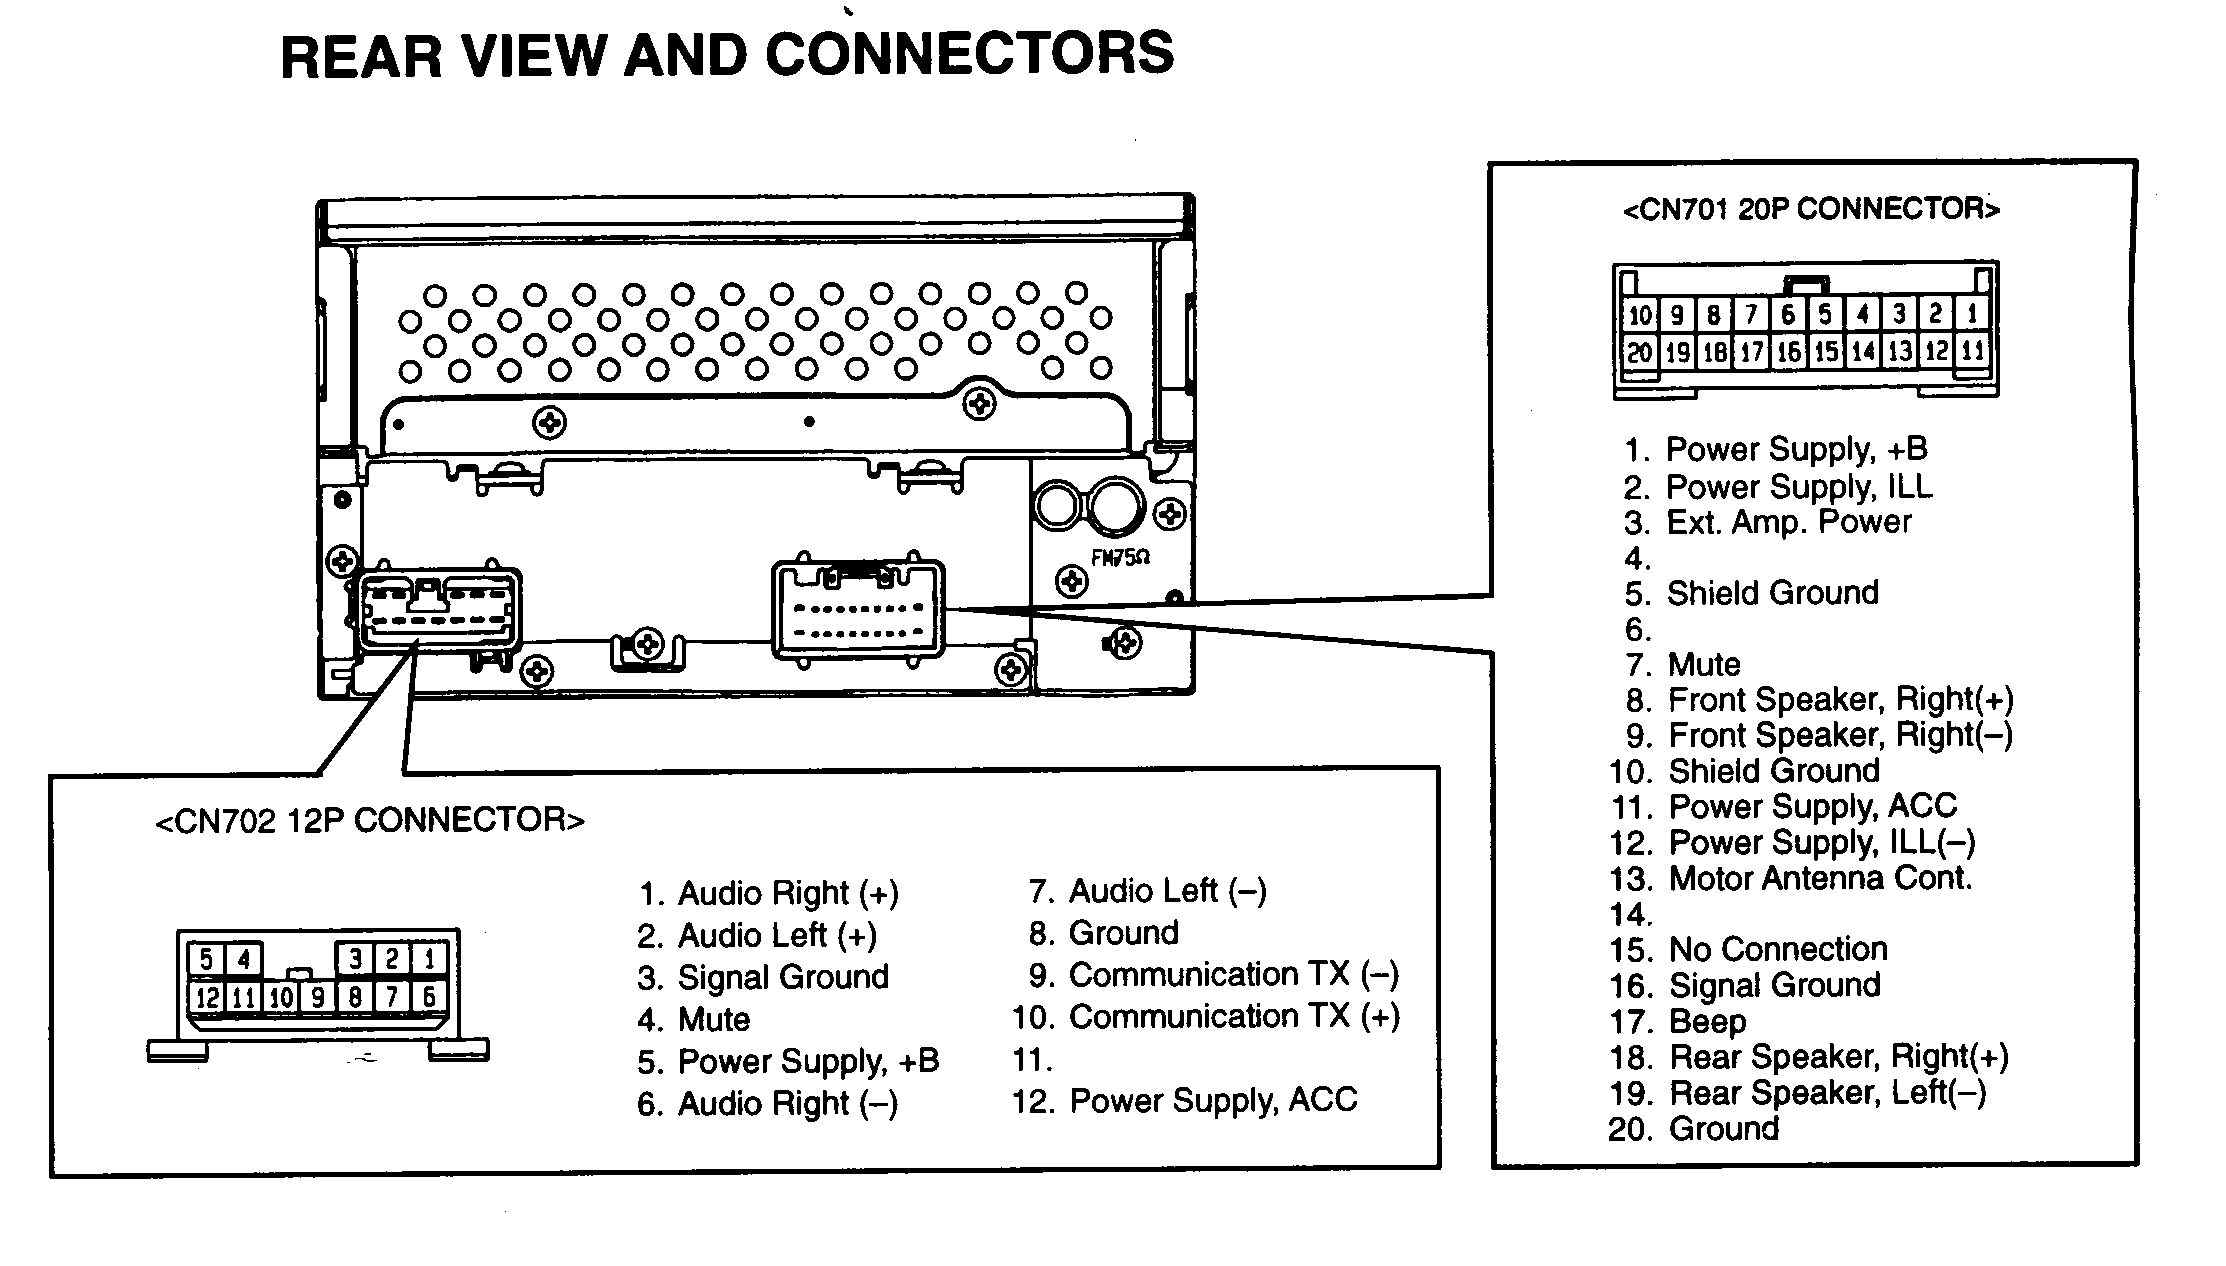 WireHarnessToyota03210201 speaker bose amp wiring diagram wiring diagrams bose 28060 2y900 wiring diagram at mifinder.co